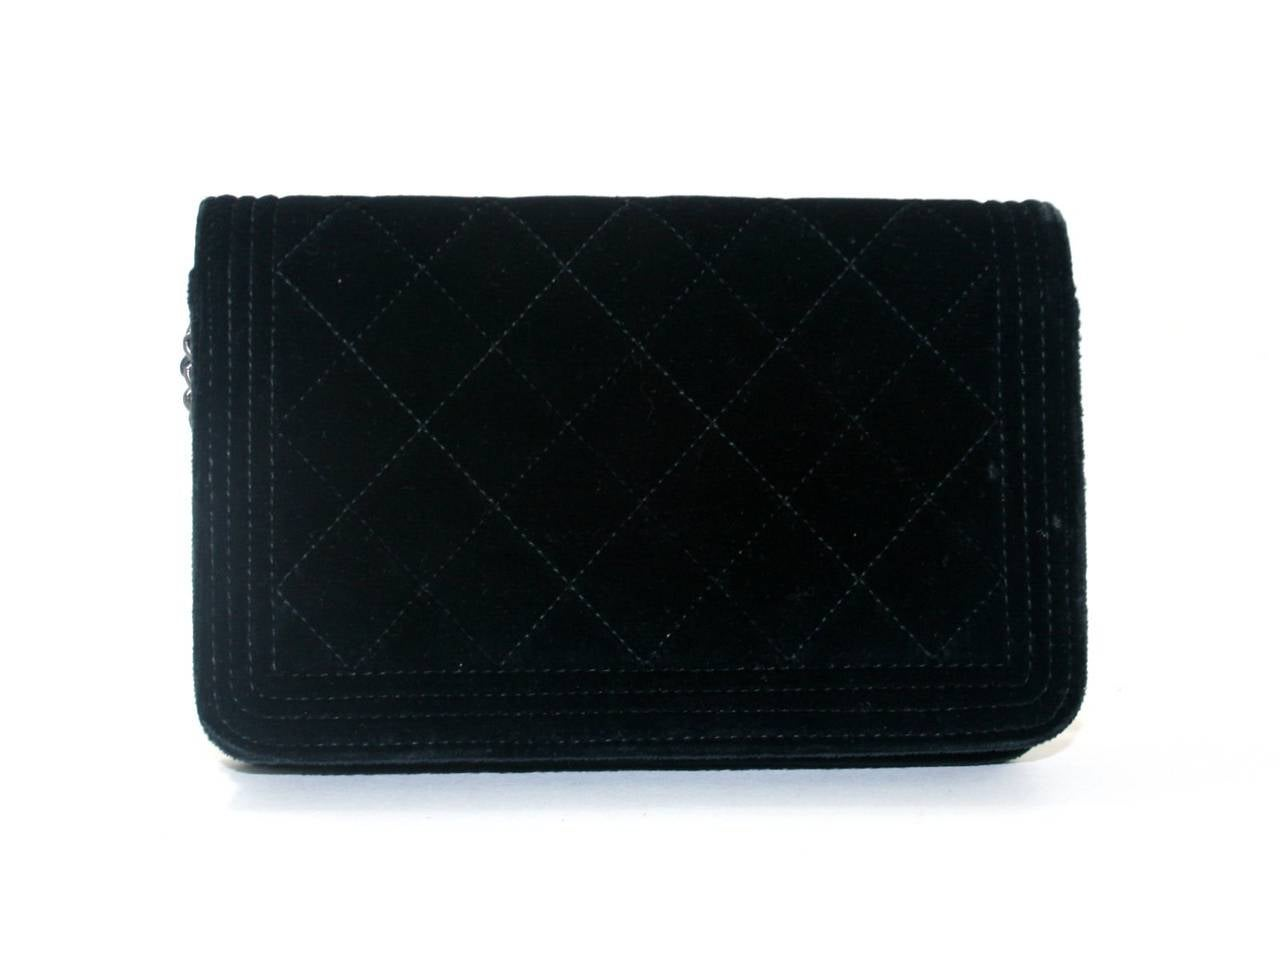 Chanel Black Velvet WOC Boy Bag Wallet on a Chain Ltd. Ed. 2